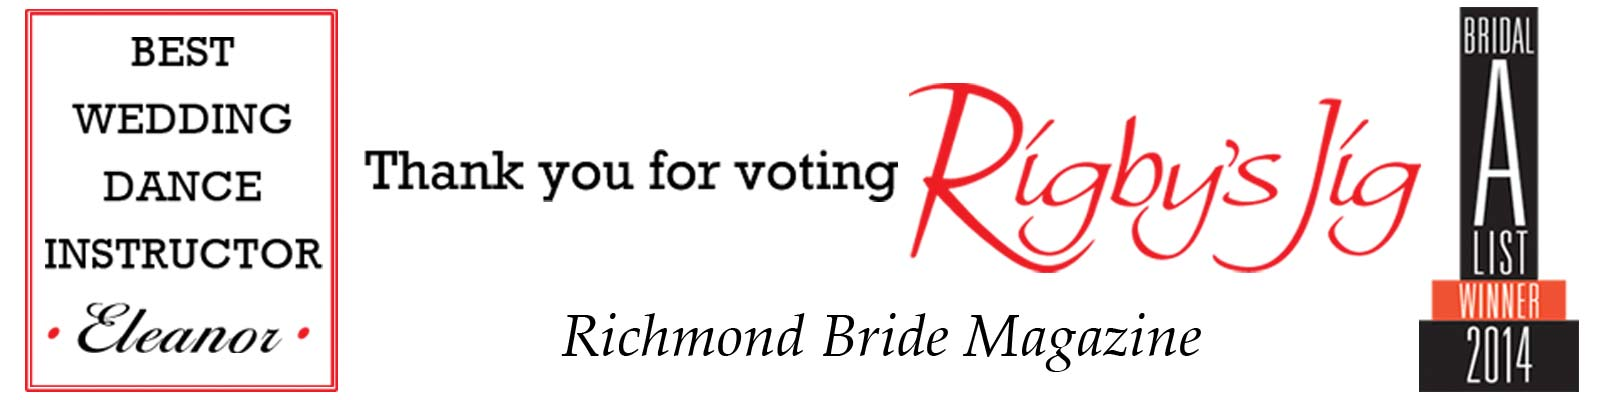 Voted in Richmond Bride Magazine as Best Wedding Dance Instructor